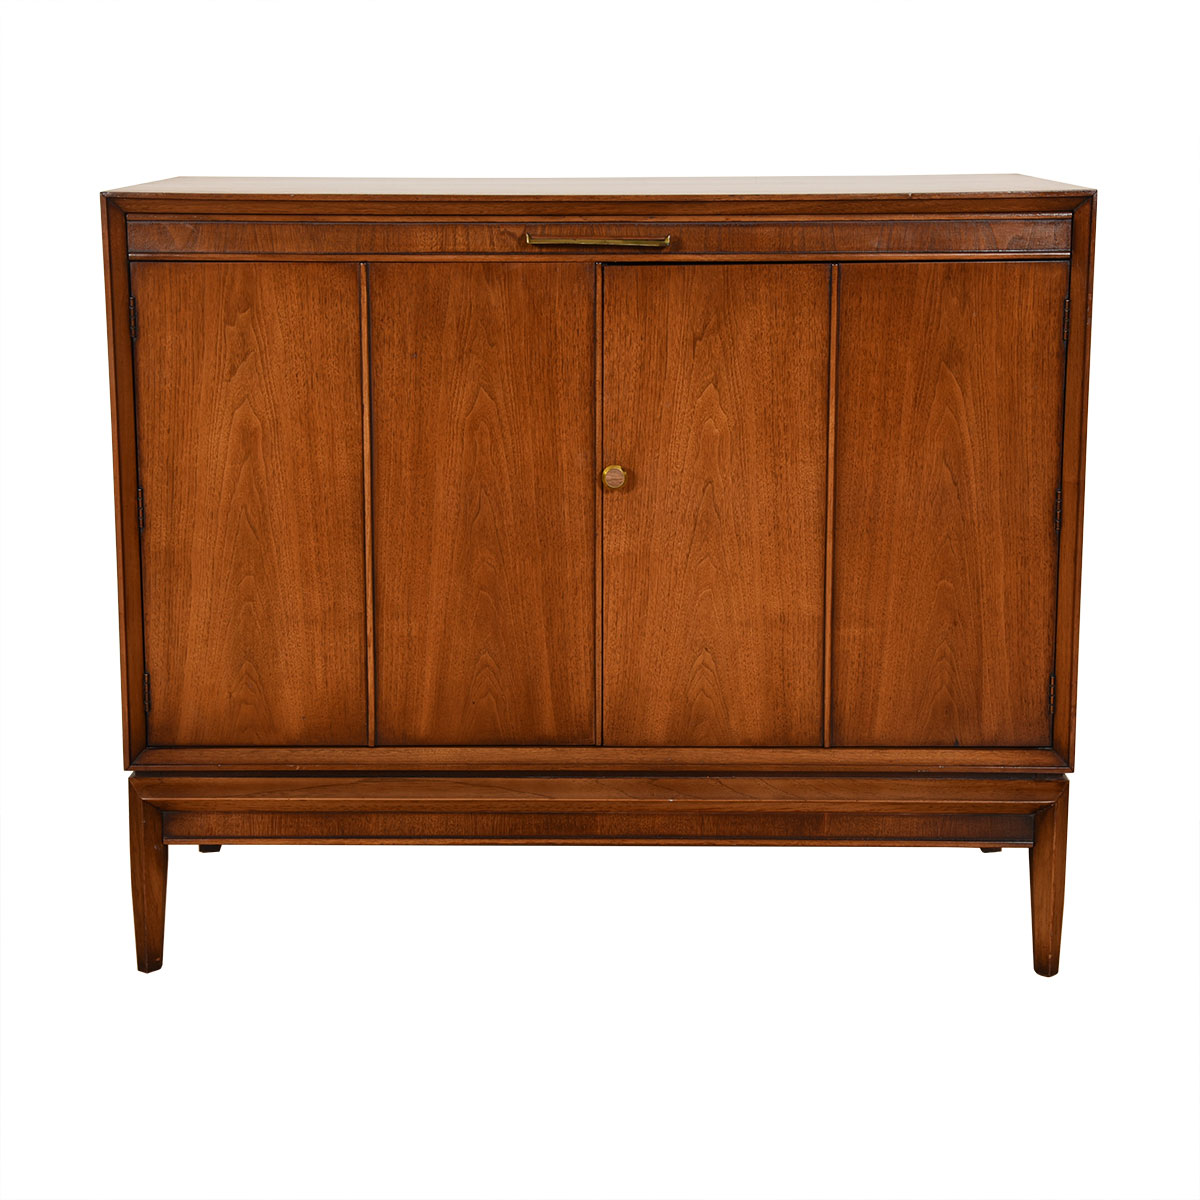 Drexel Mid Century Modern Walnut Serving / Bar Cabinet